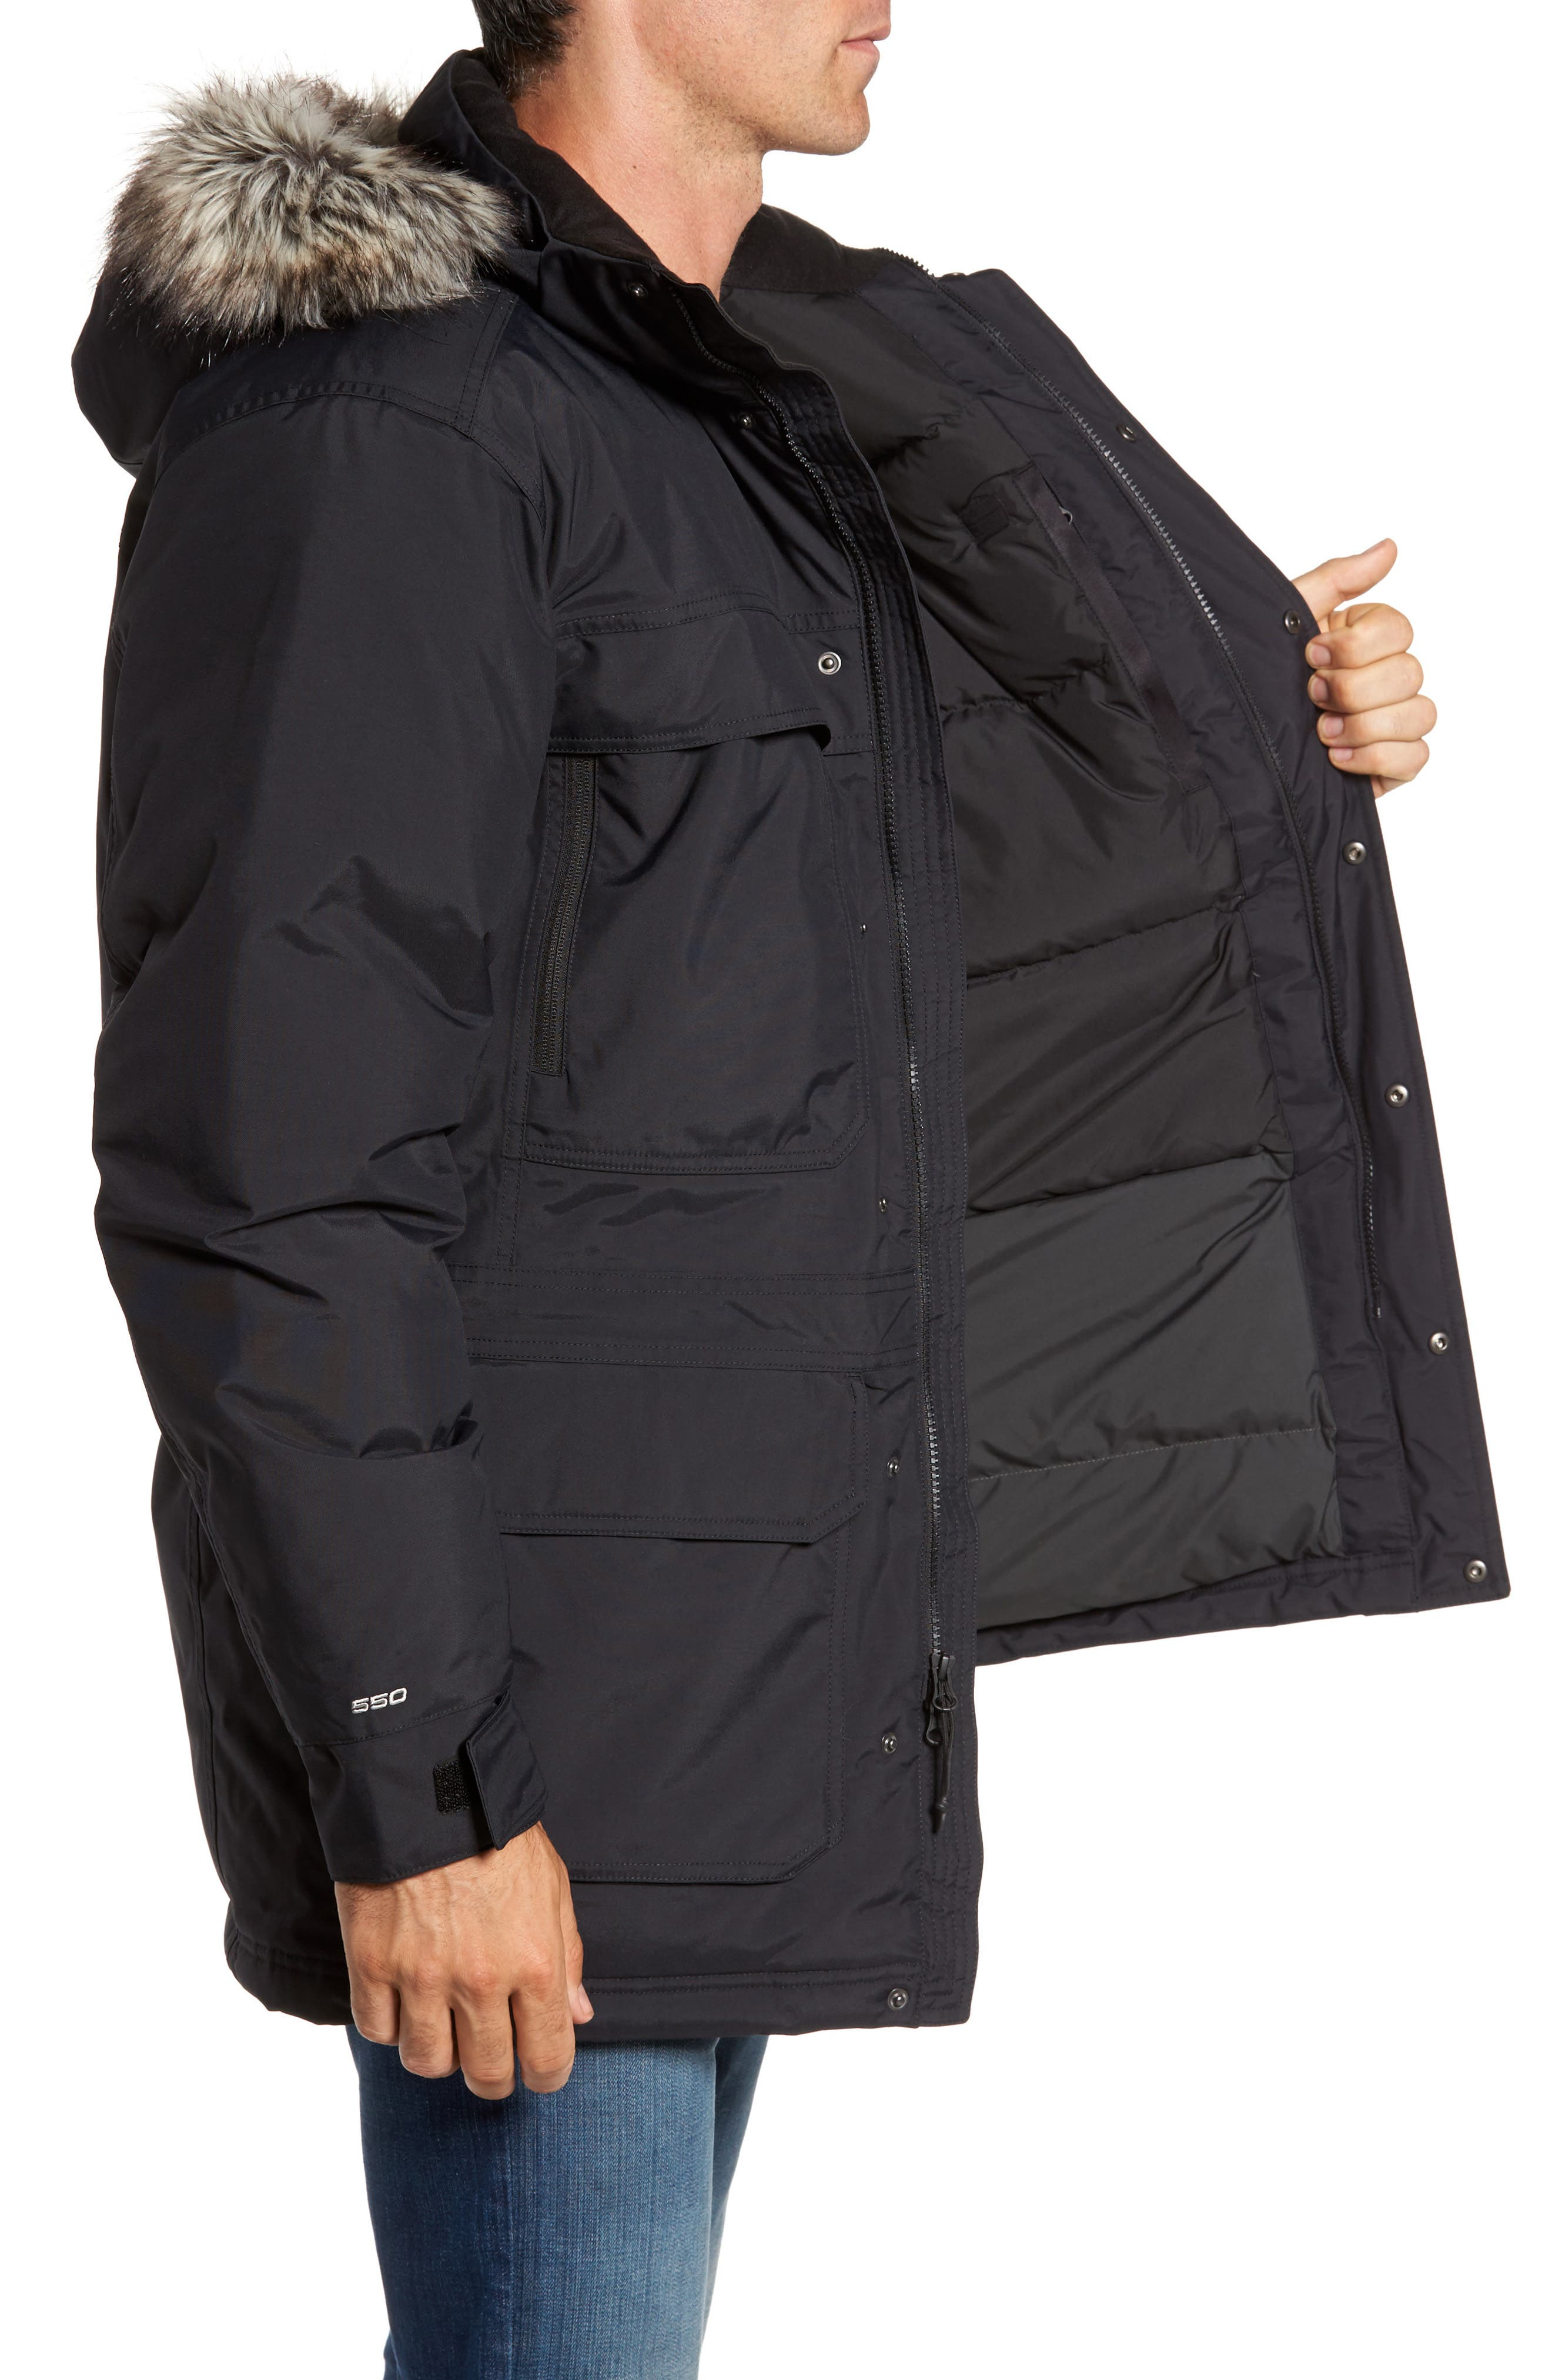 THE NORTH FACE,                             McMurdo III Waterproof Parka,                             Alternate thumbnail 3, color,                             001